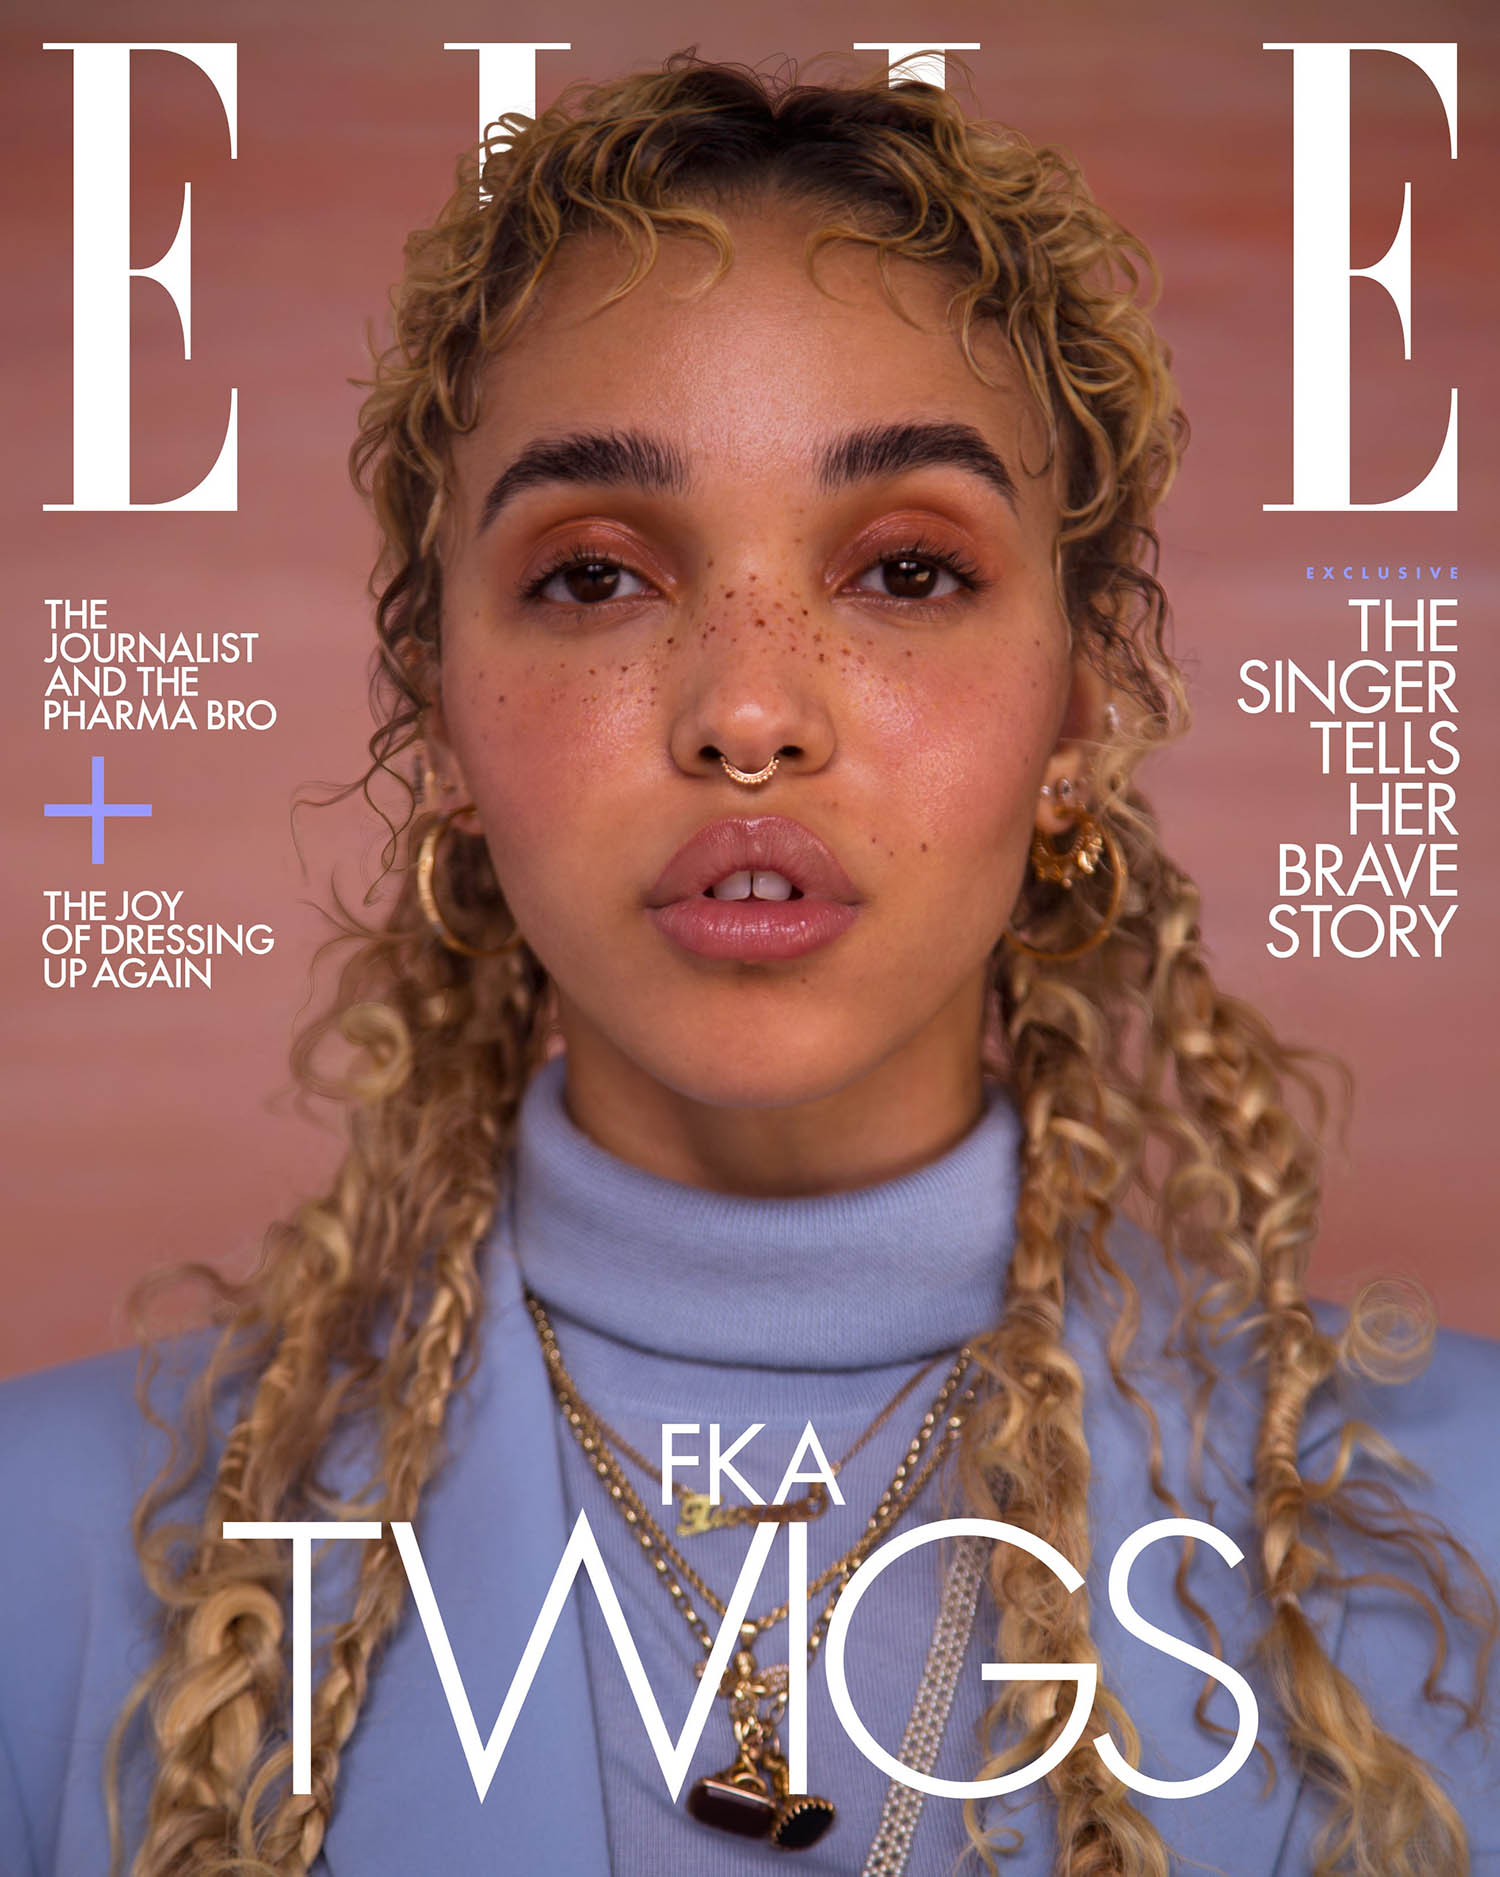 FKA Twigs covers Elle US March 2021 by Ruth Ossai